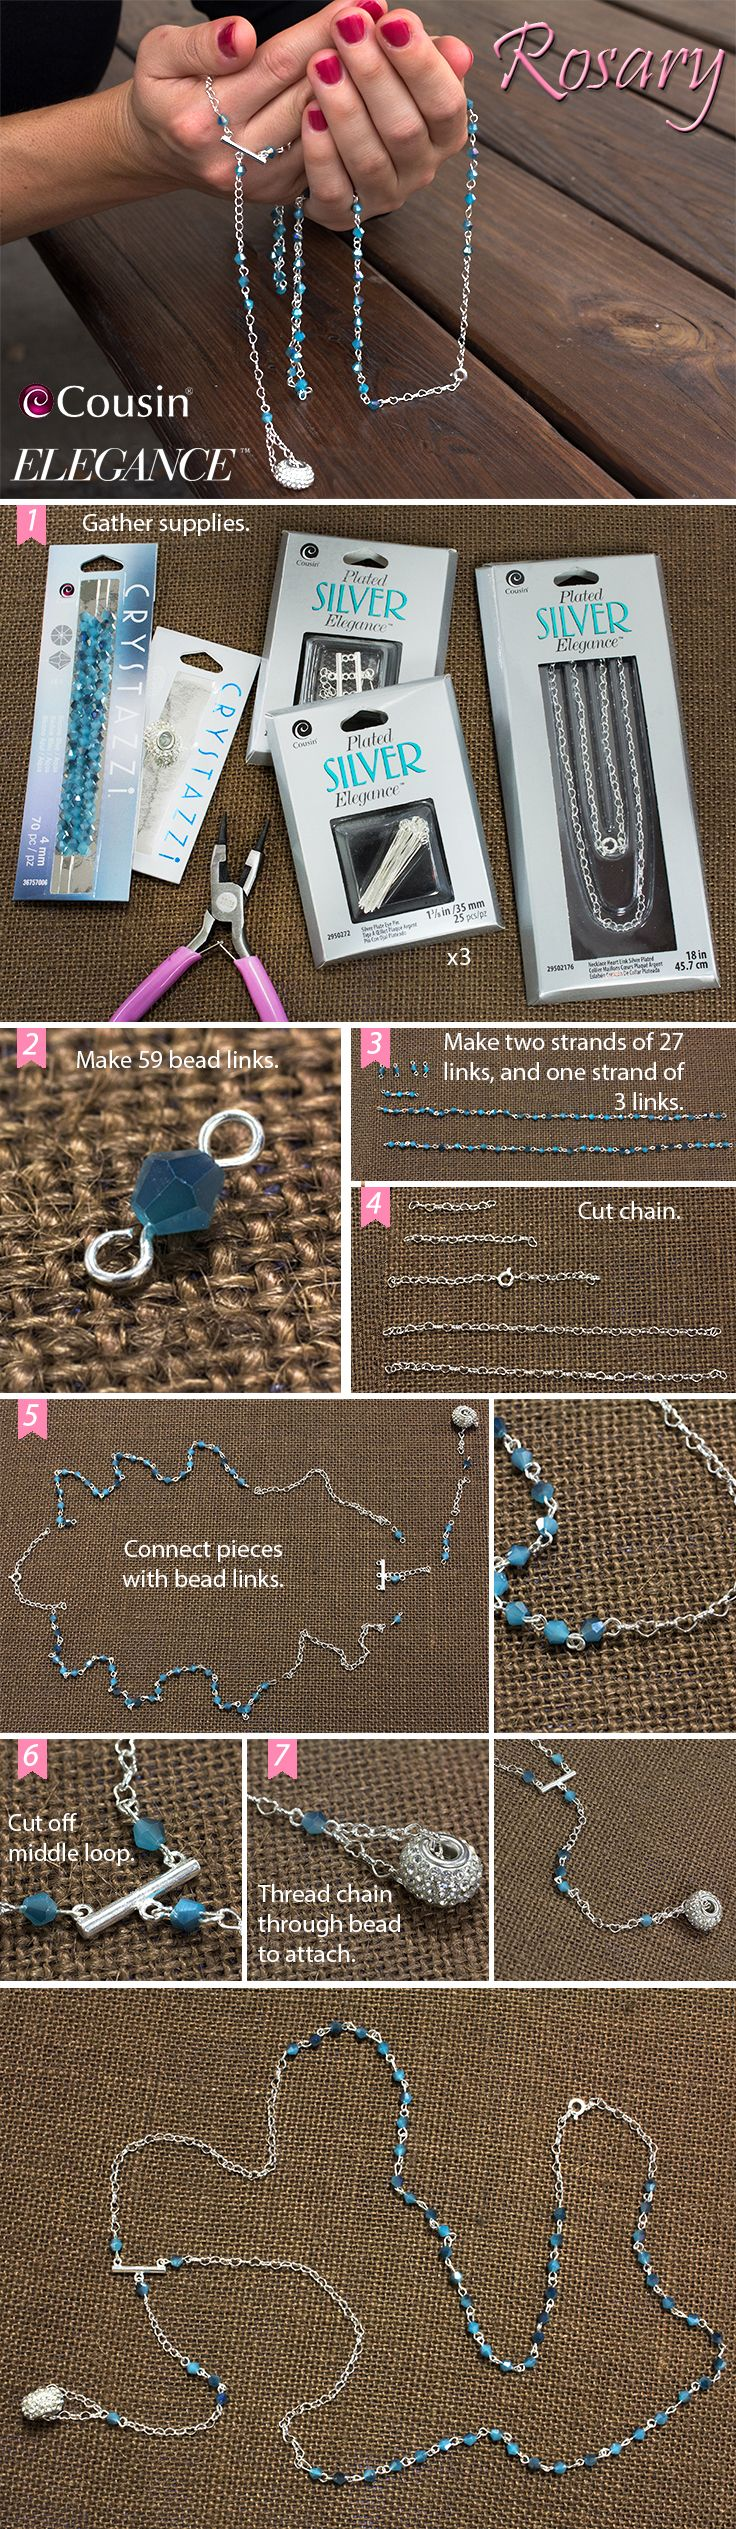 Pin By Judy Odom On Jewelry Making Diy Crafts Jewelry Jewelry Crafts Diy Jewelry Projects